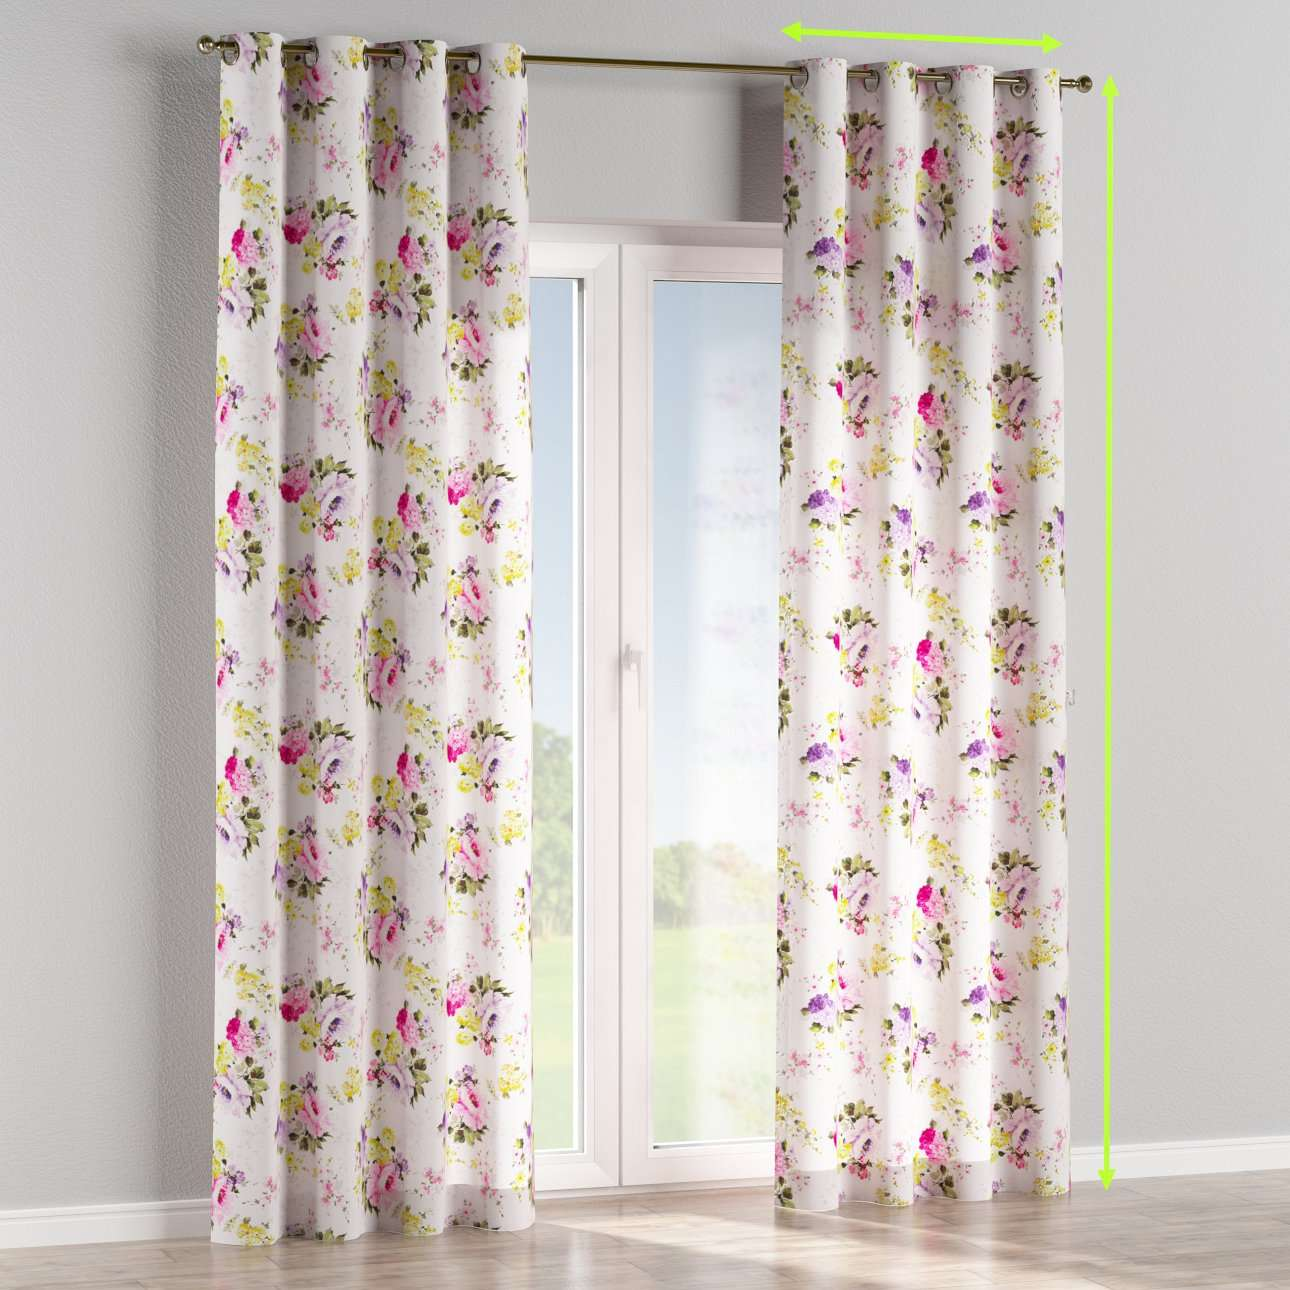 Eyelet lined curtains in collection Monet, fabric: 140-00